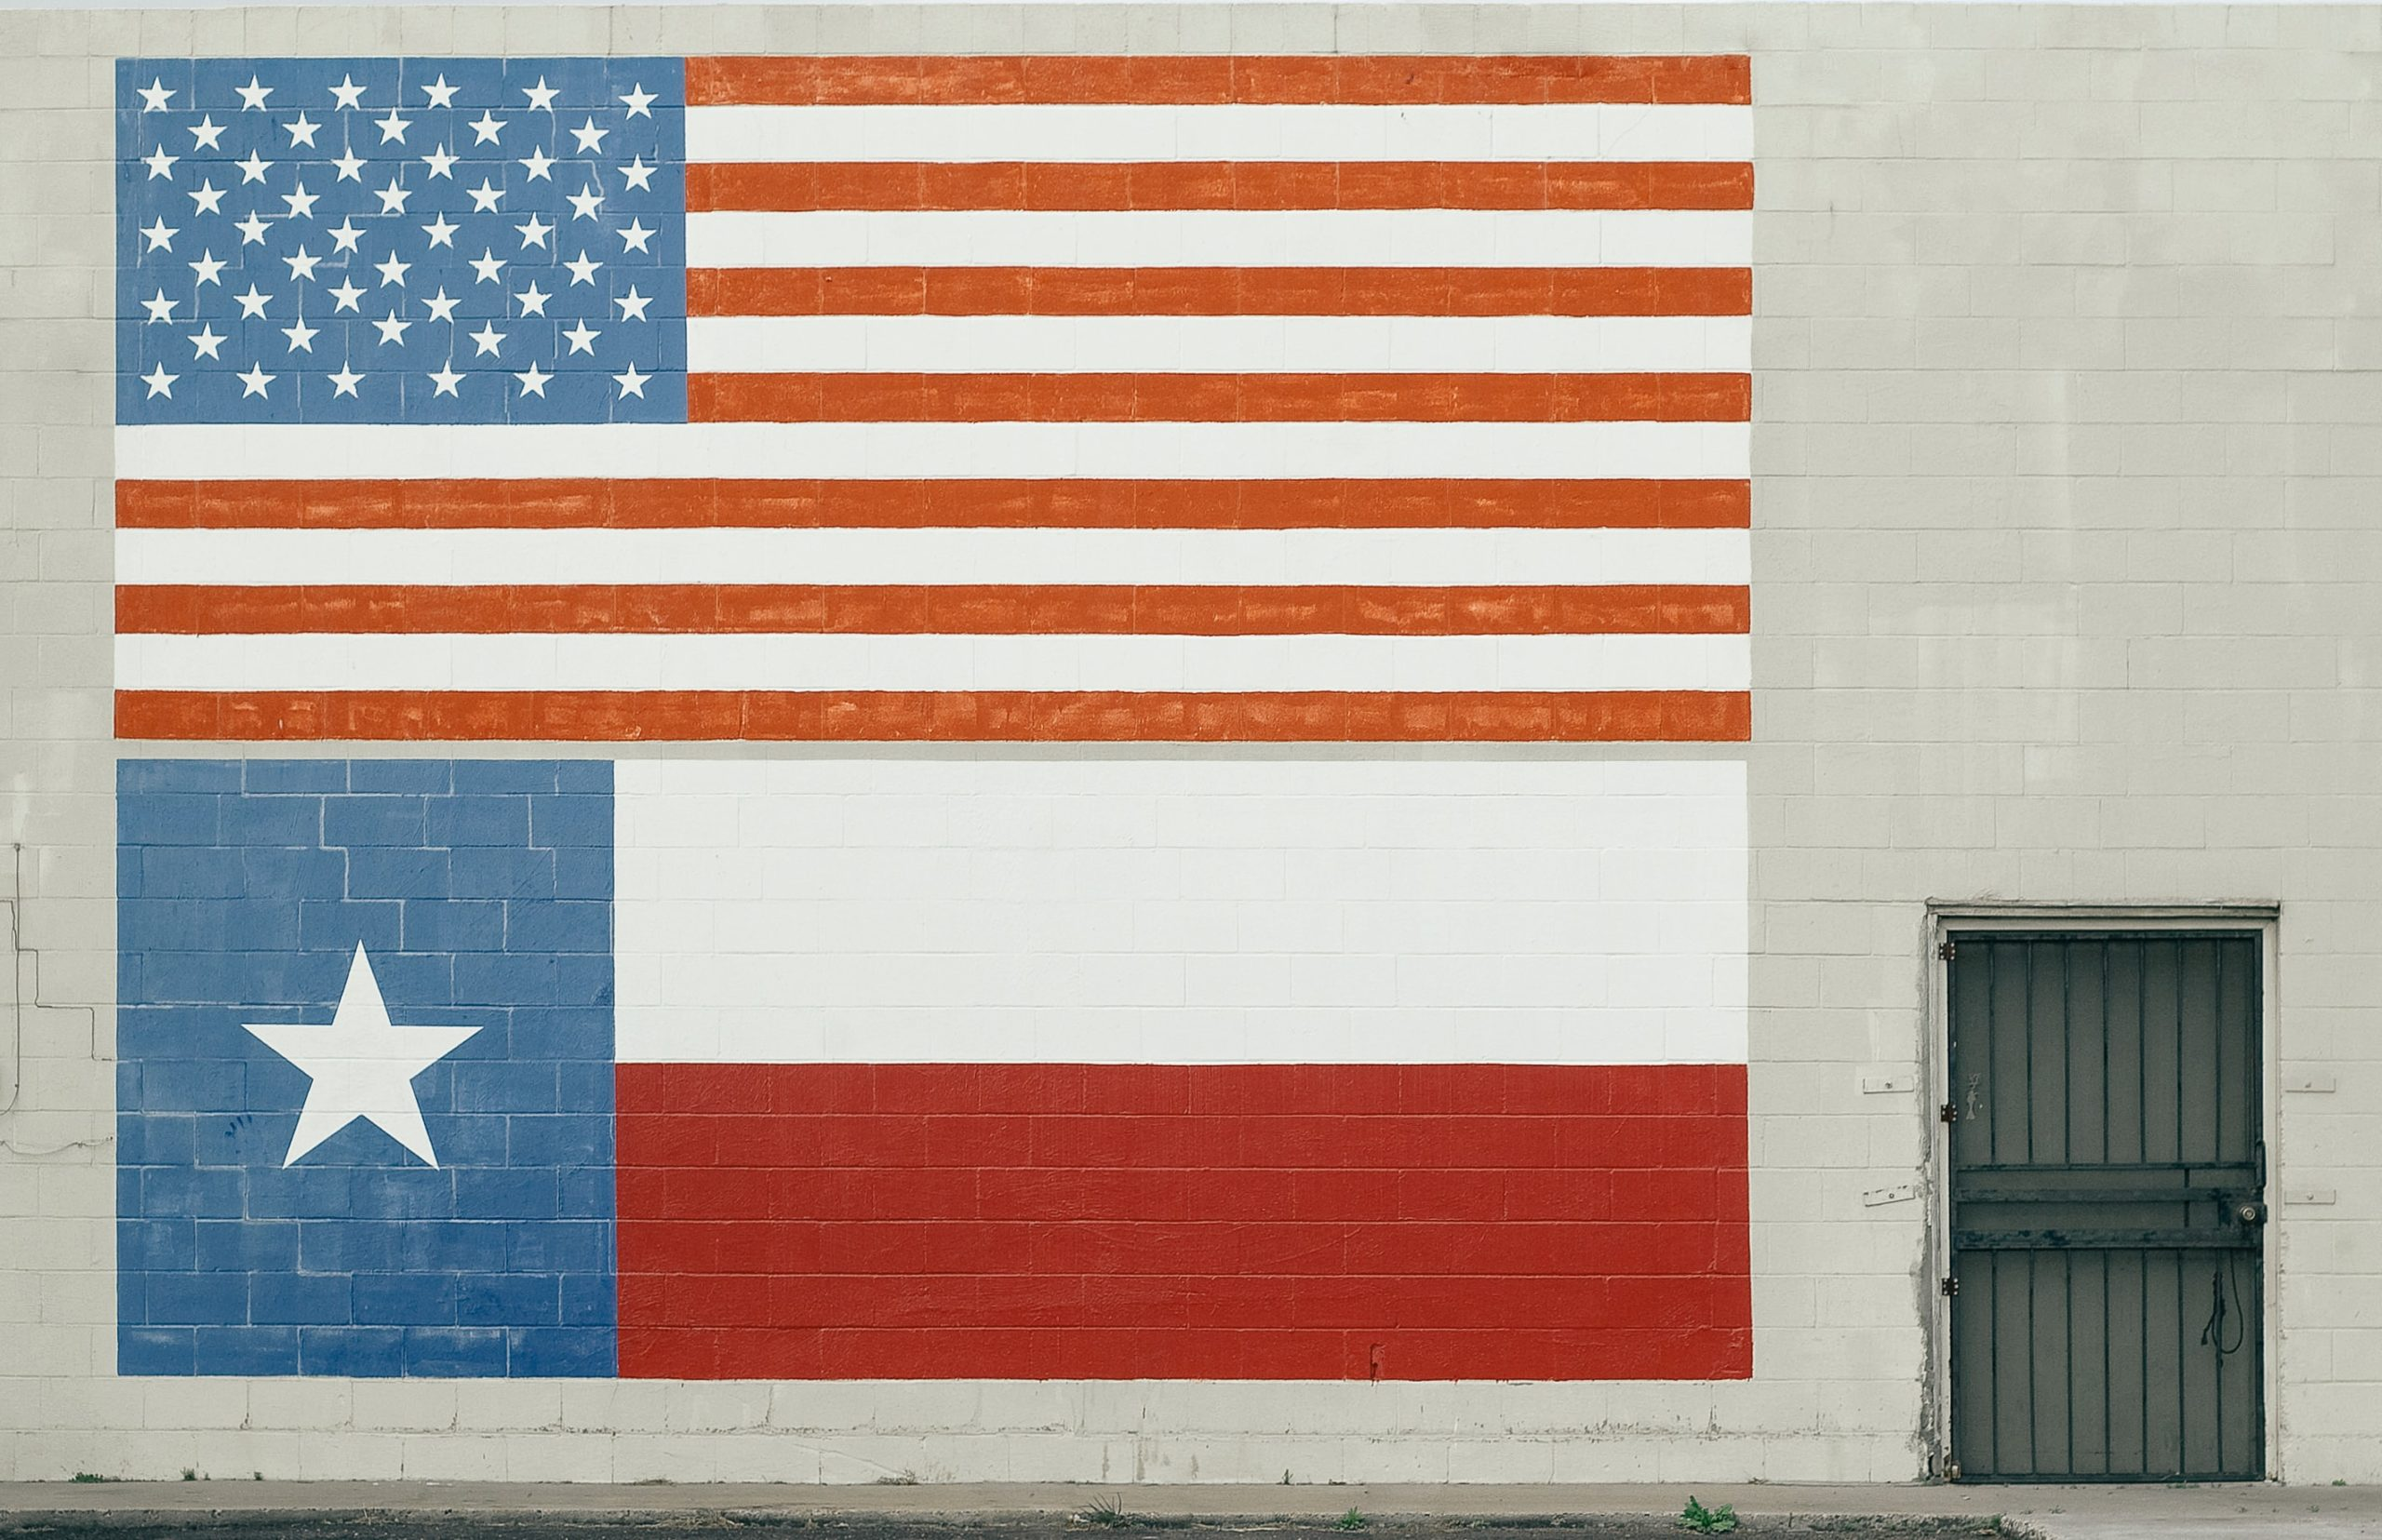 American and Texan flags